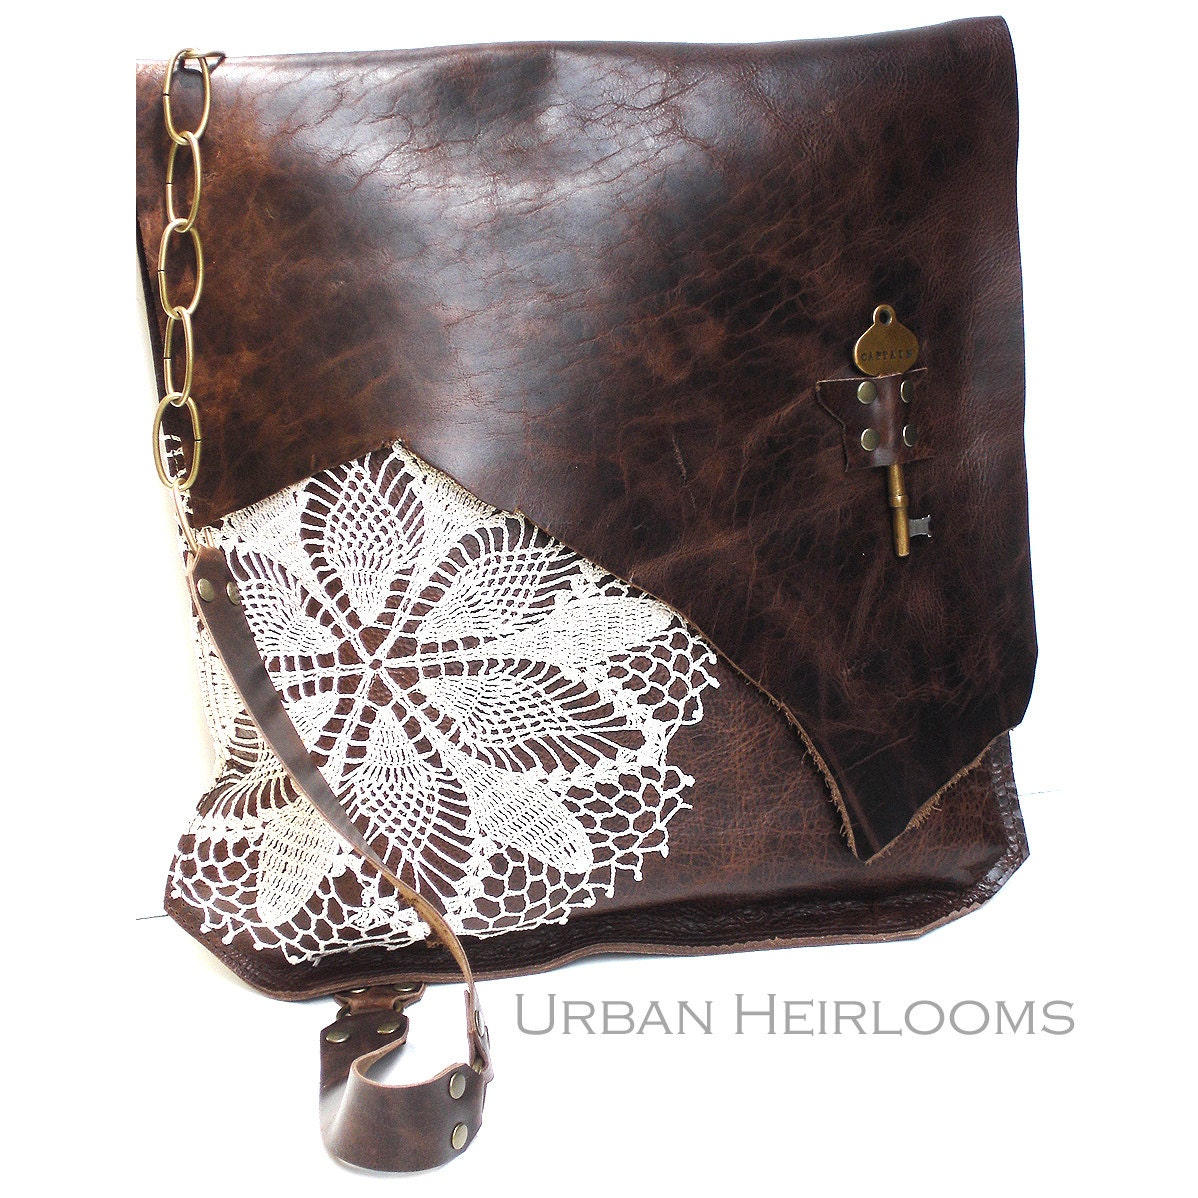 Leather Crochet Bag : Brown Leather Boho Messenger Bag with Crochet Lace & Antique Key - XL ...